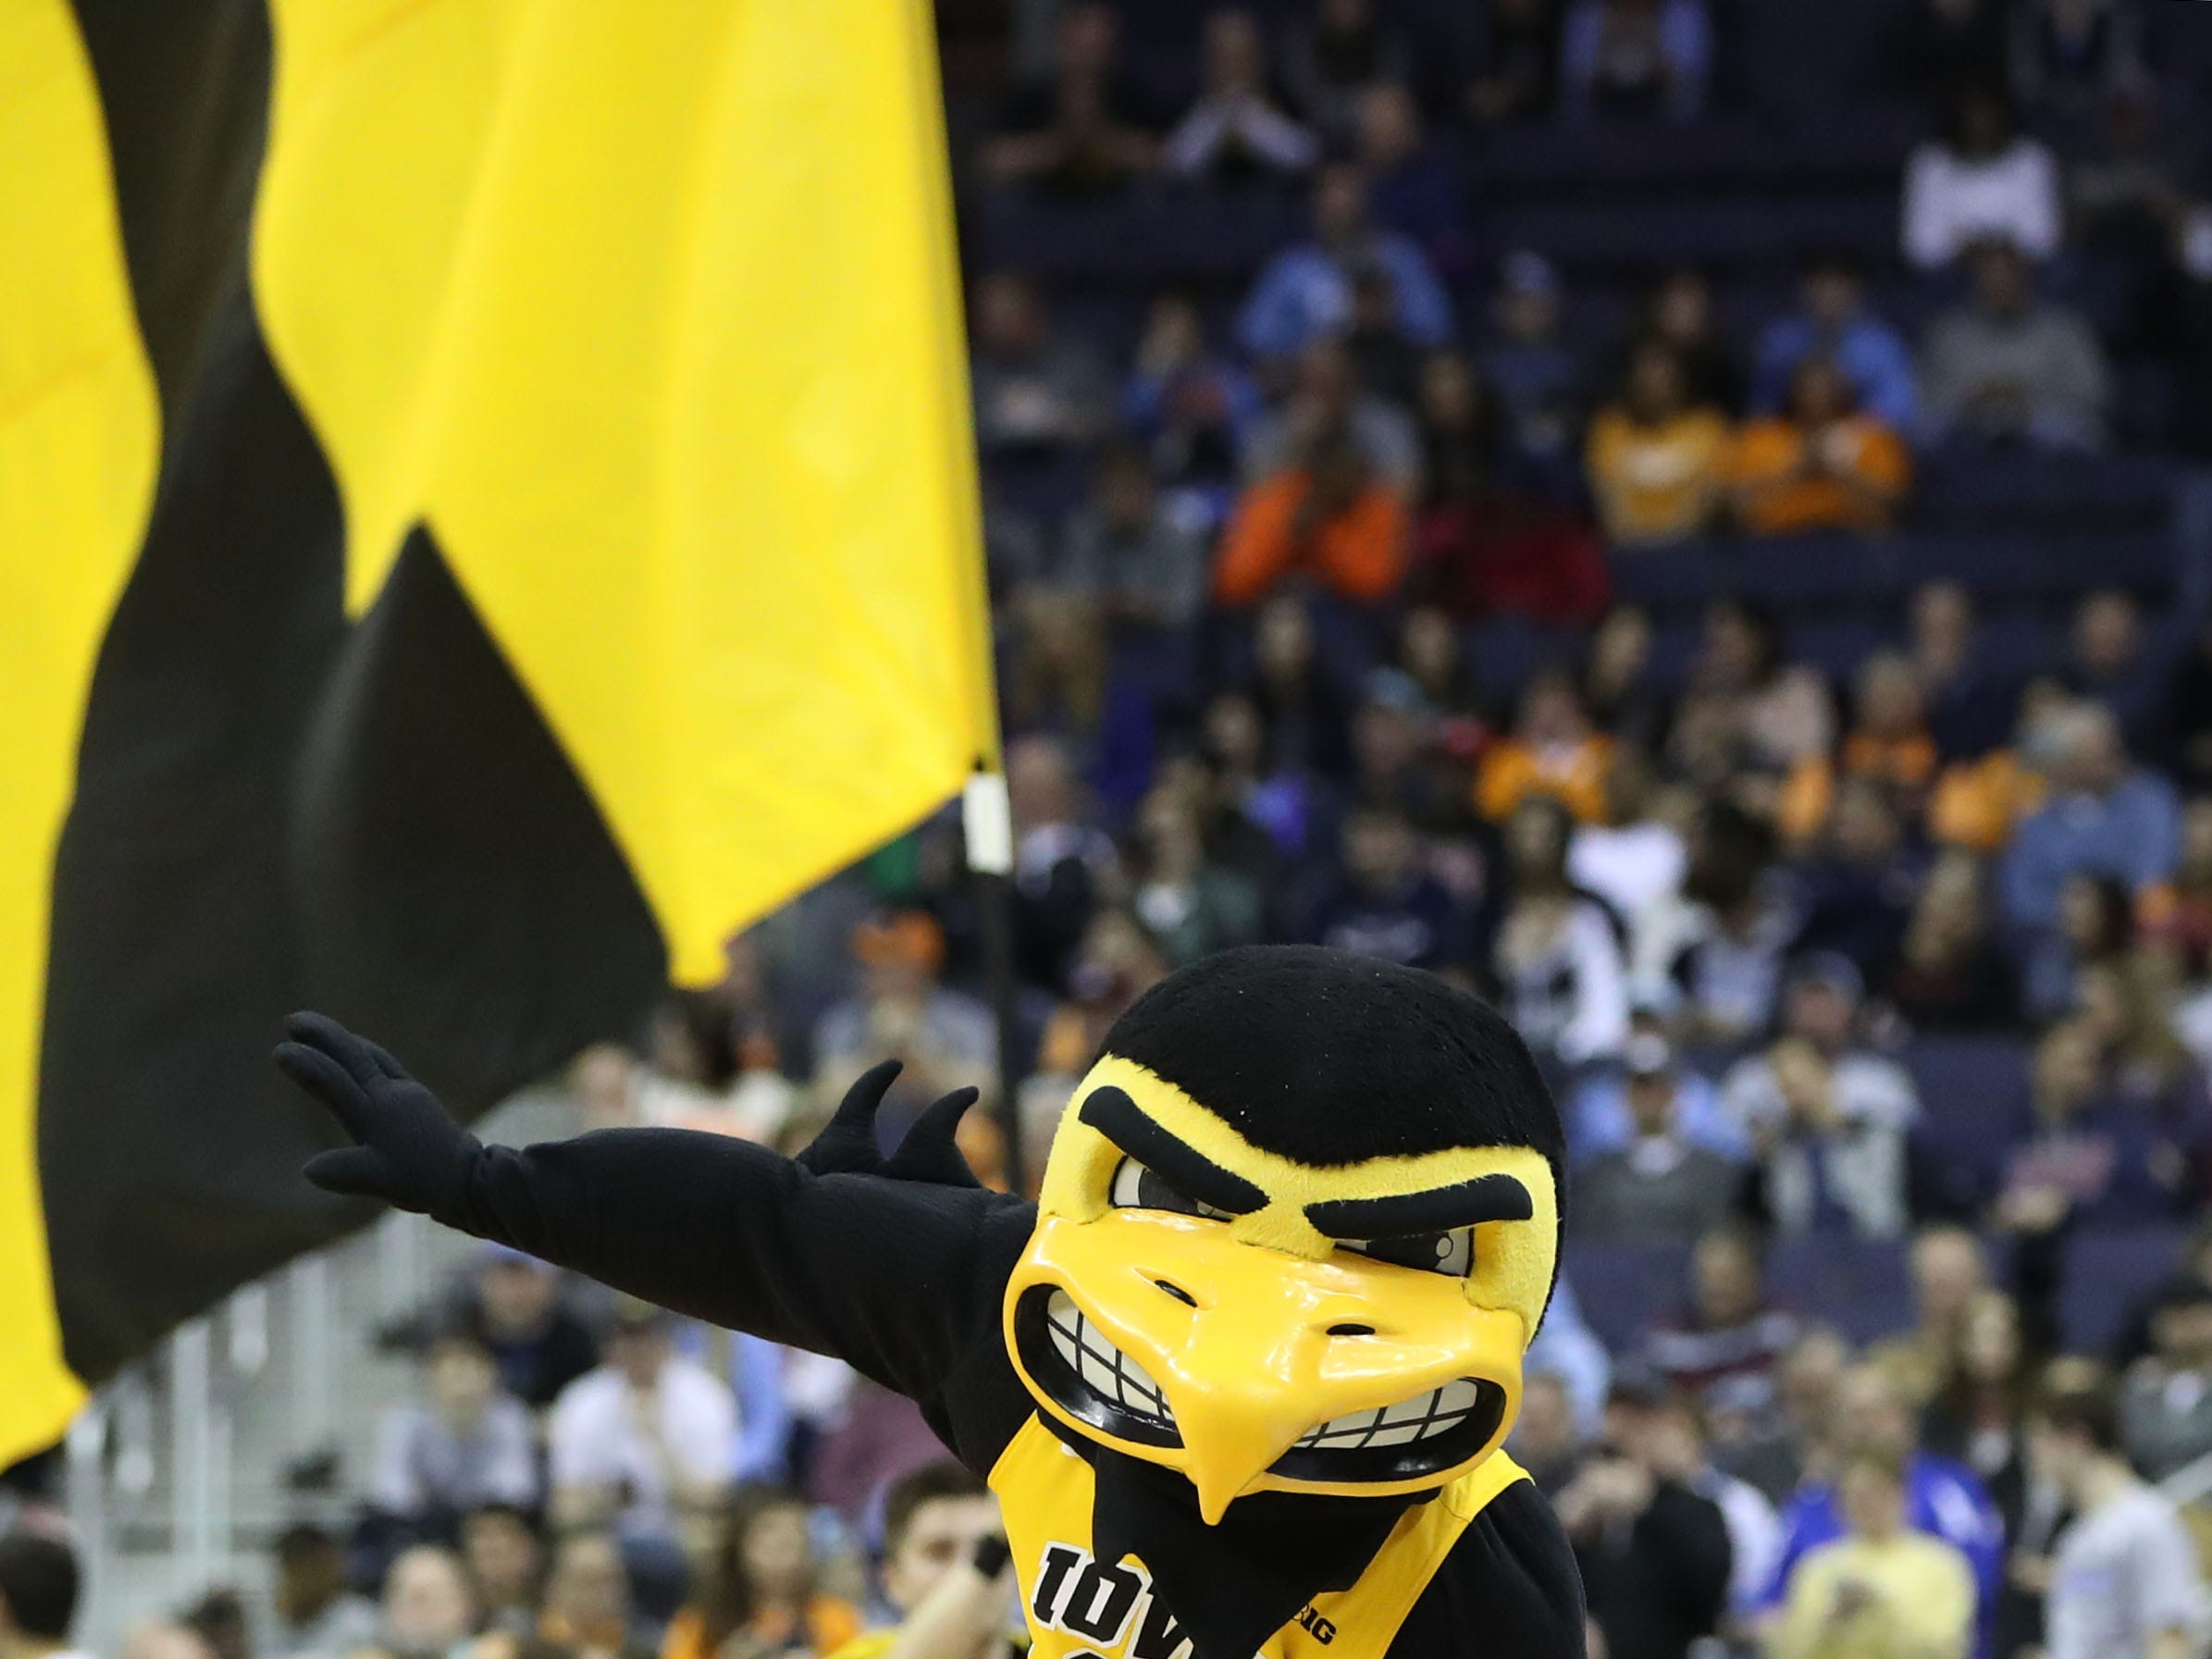 Iowa Hawkeyes mascot Herky the Hawk runs down the court before the game against the Tennessee Volunteers in the second round of the 2019 NCAA Tournament at Nationwide Arena.